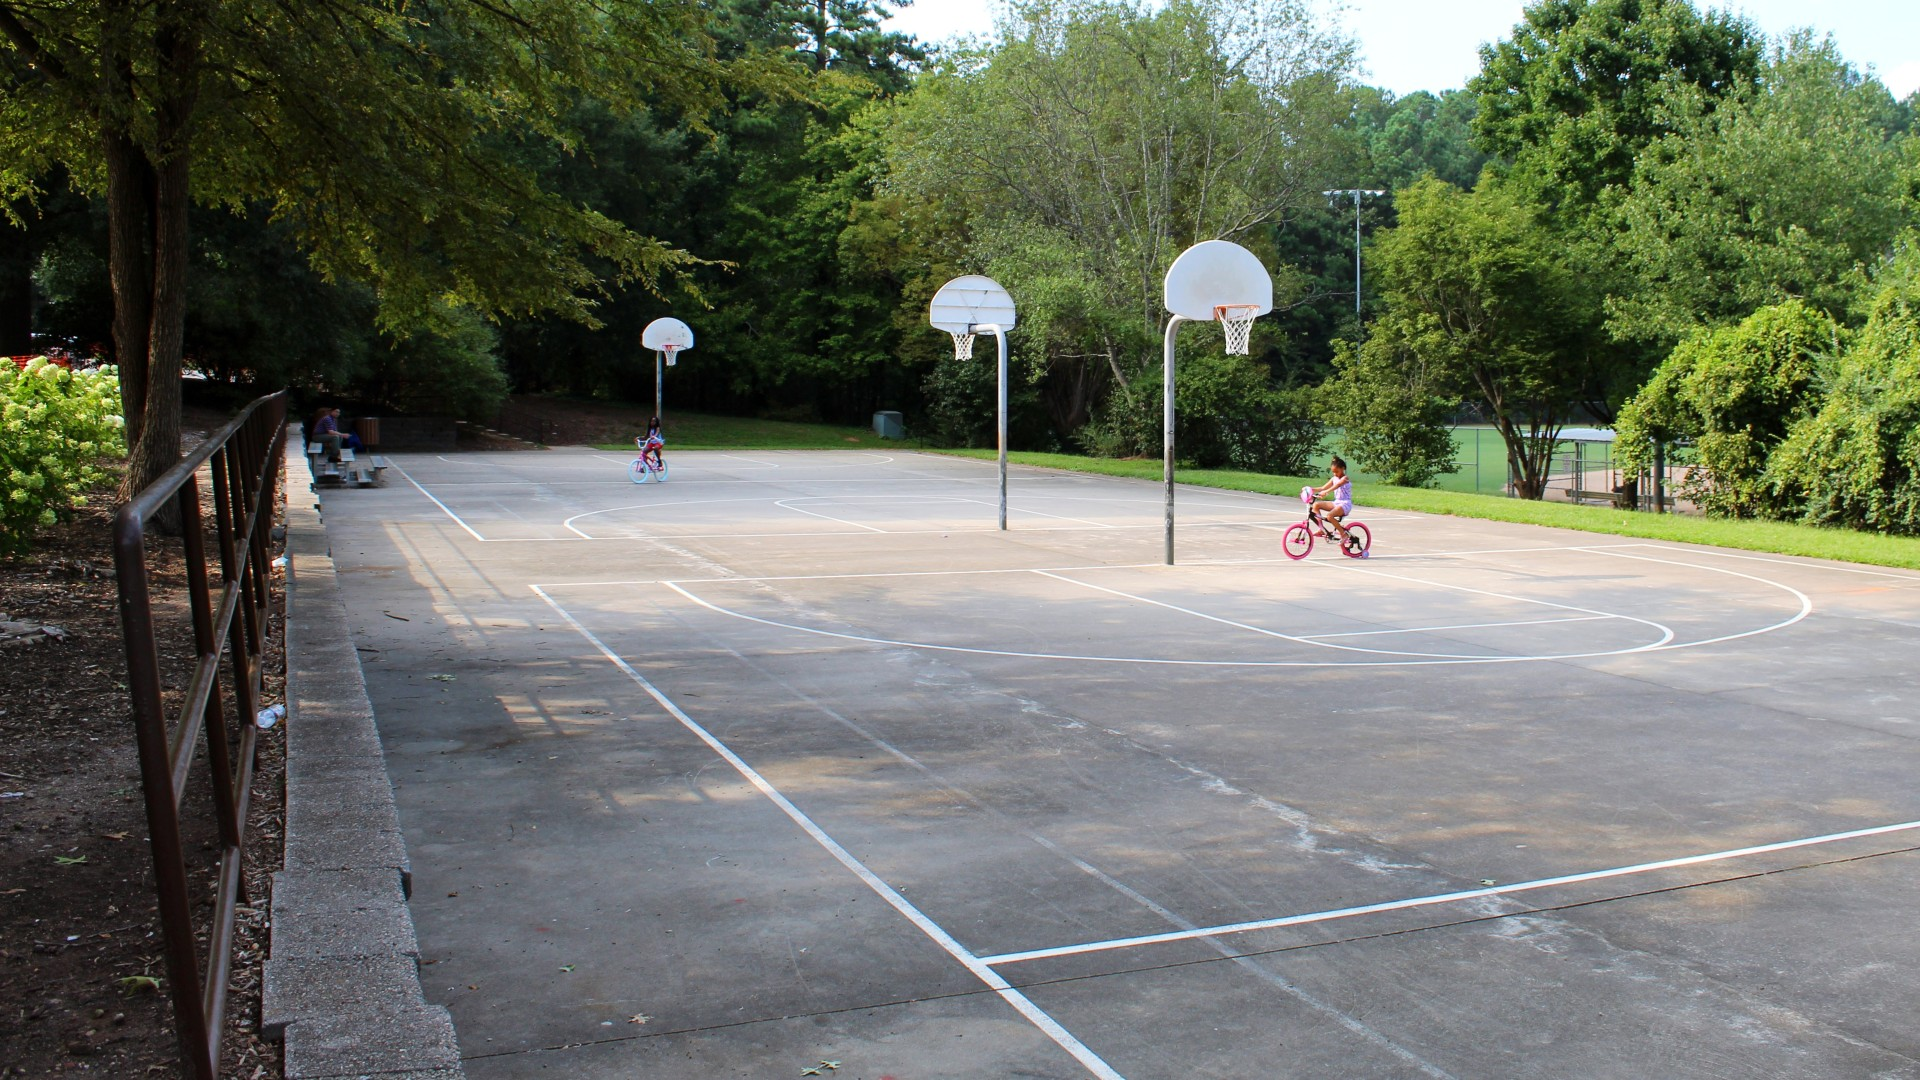 The outdoor basketball court with multiple hoops